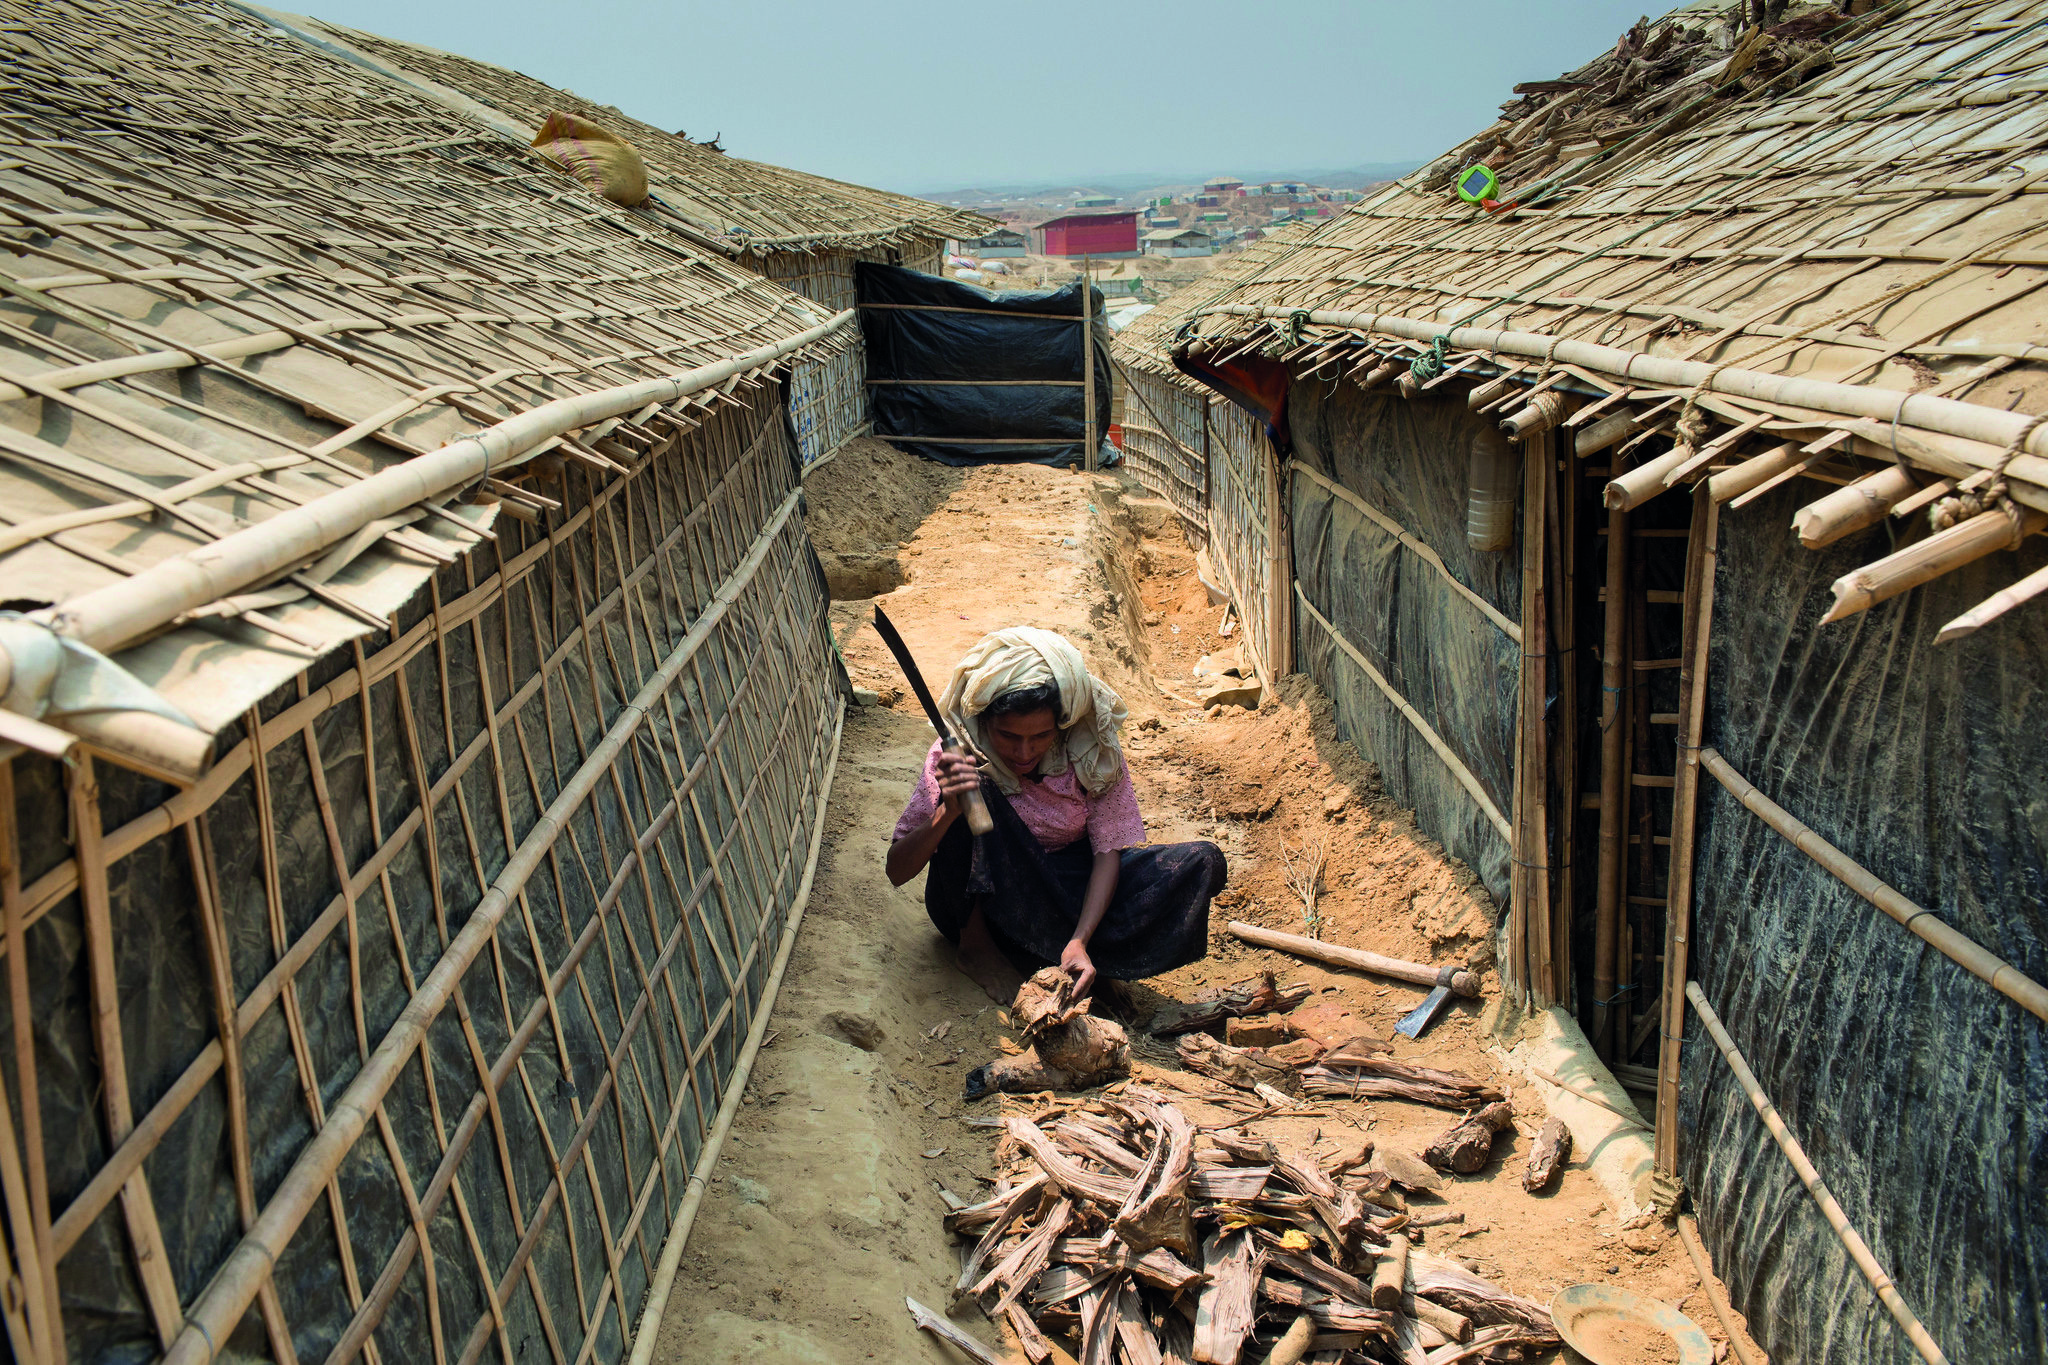 A Rohingya refugee chops firewood for cooking in Kutupalong megacamp